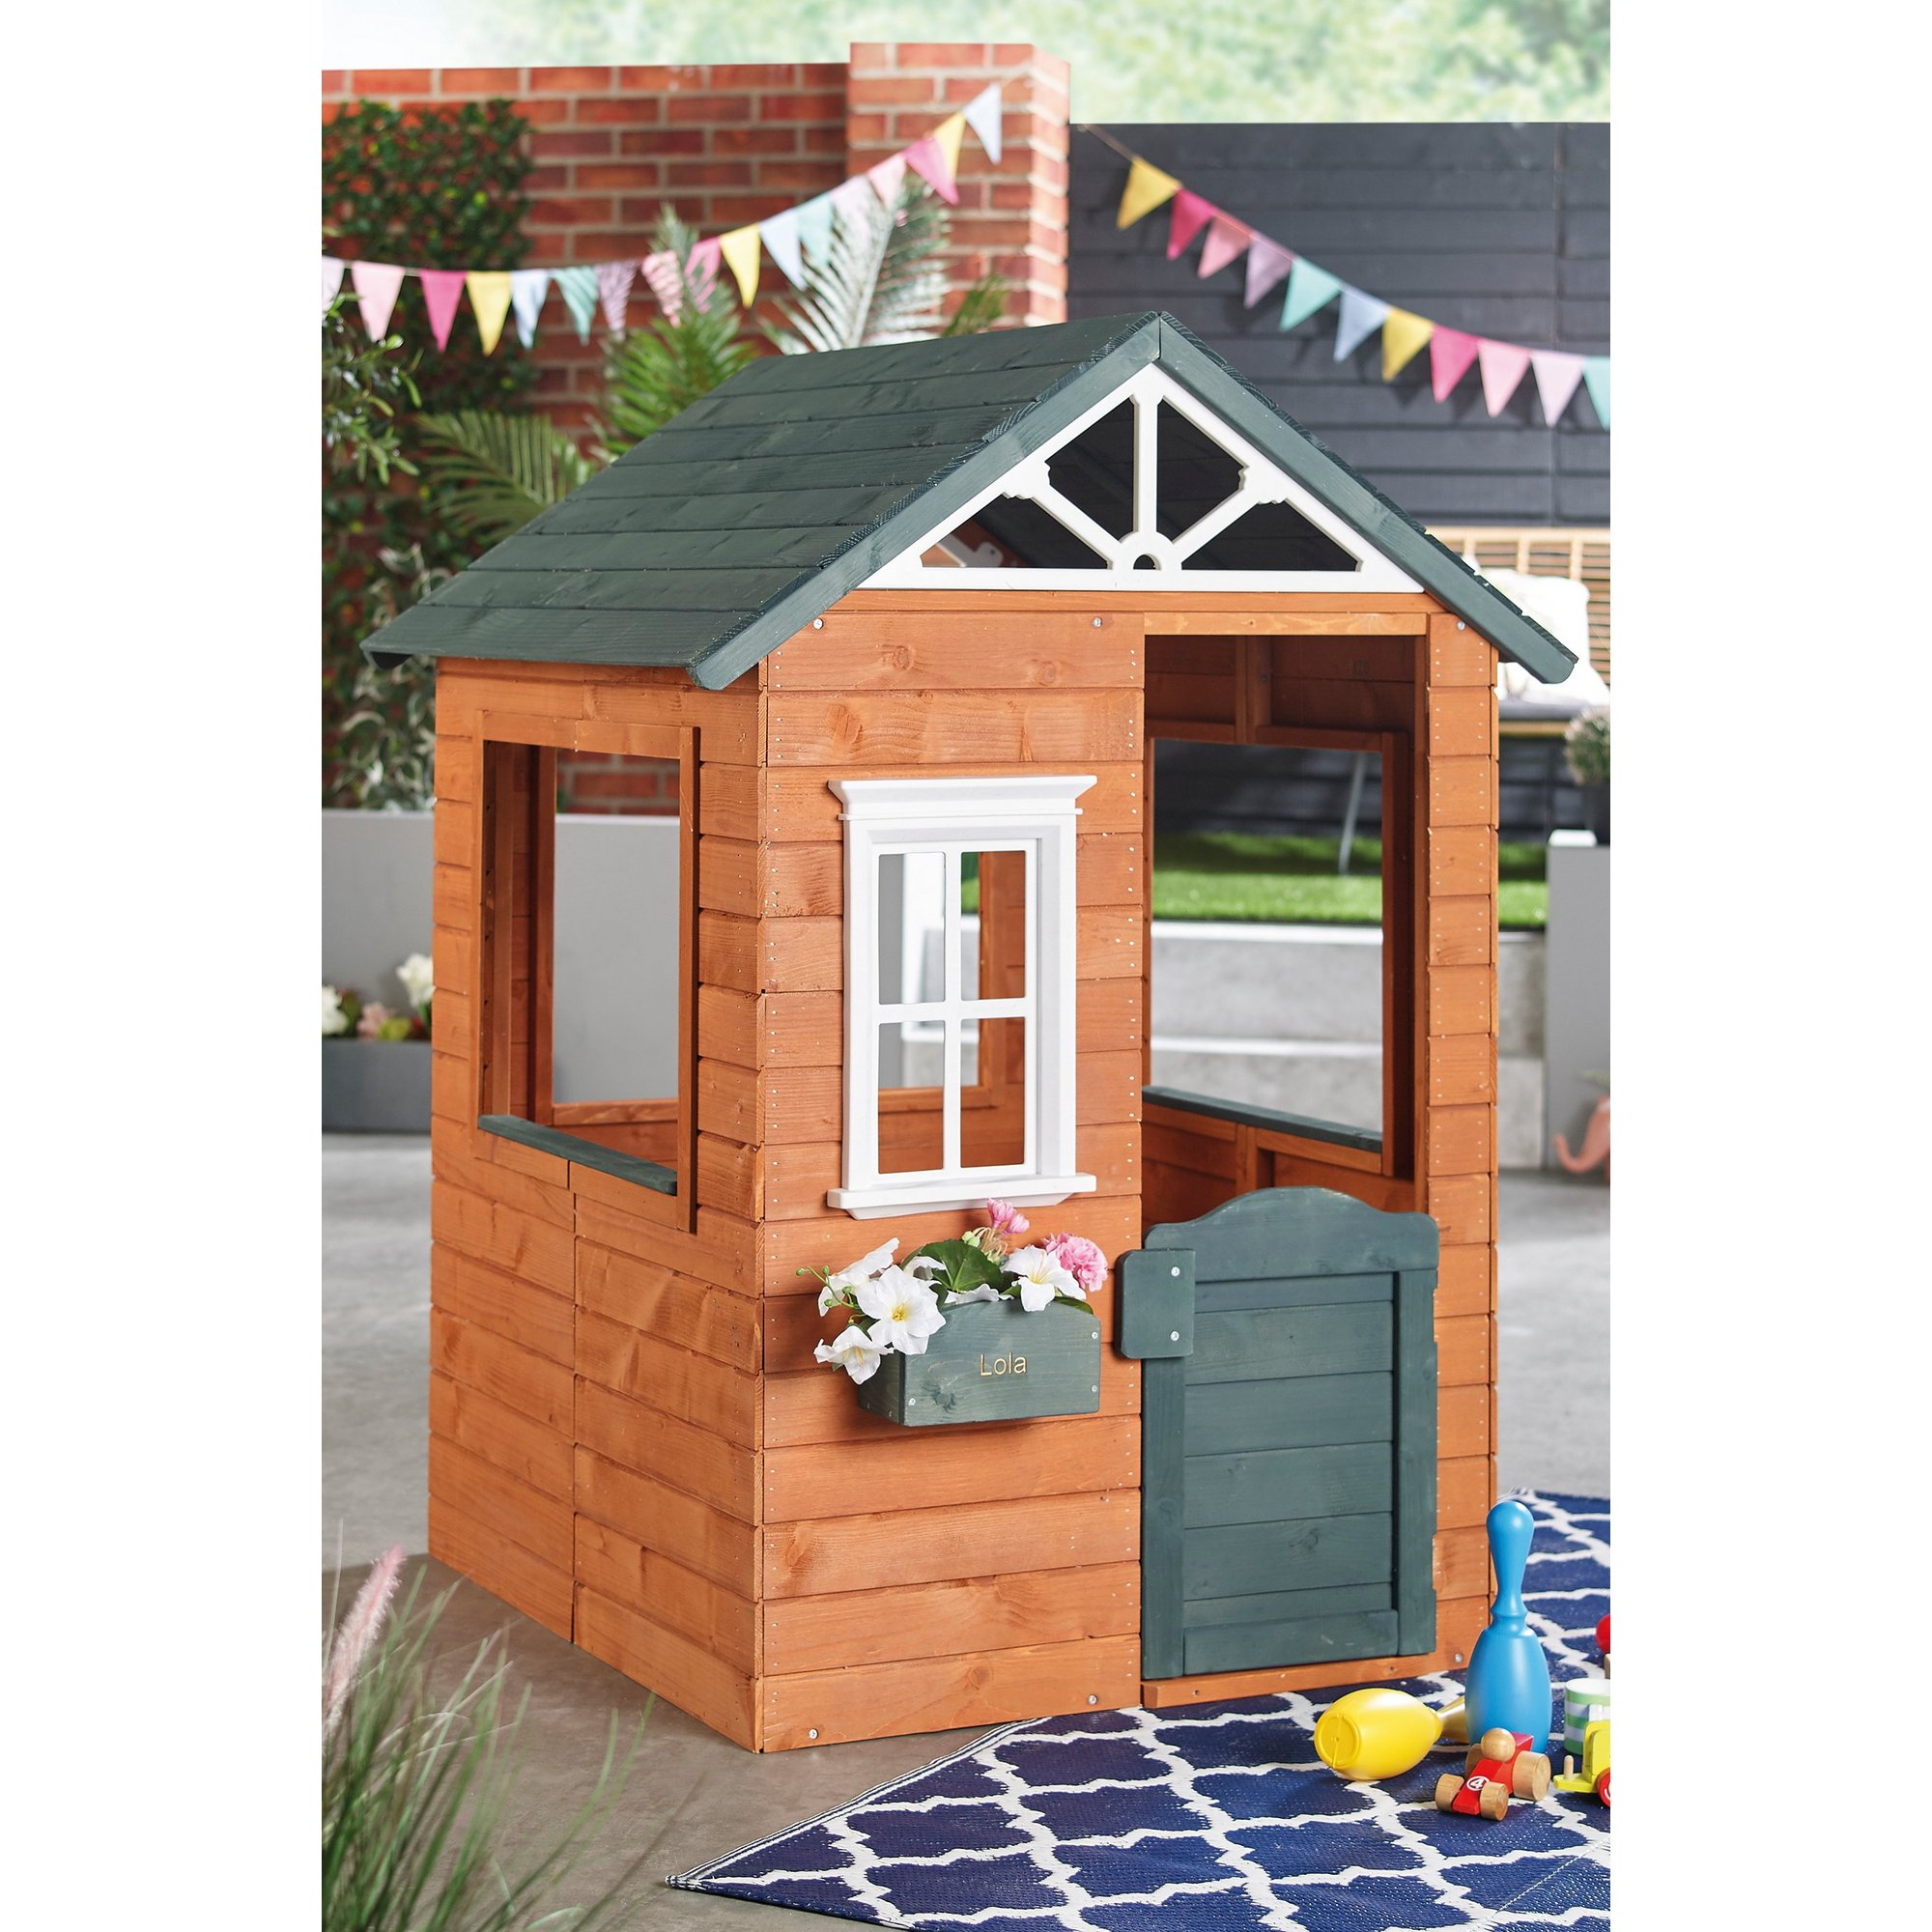 Image of Personalised Wooden Playhouse